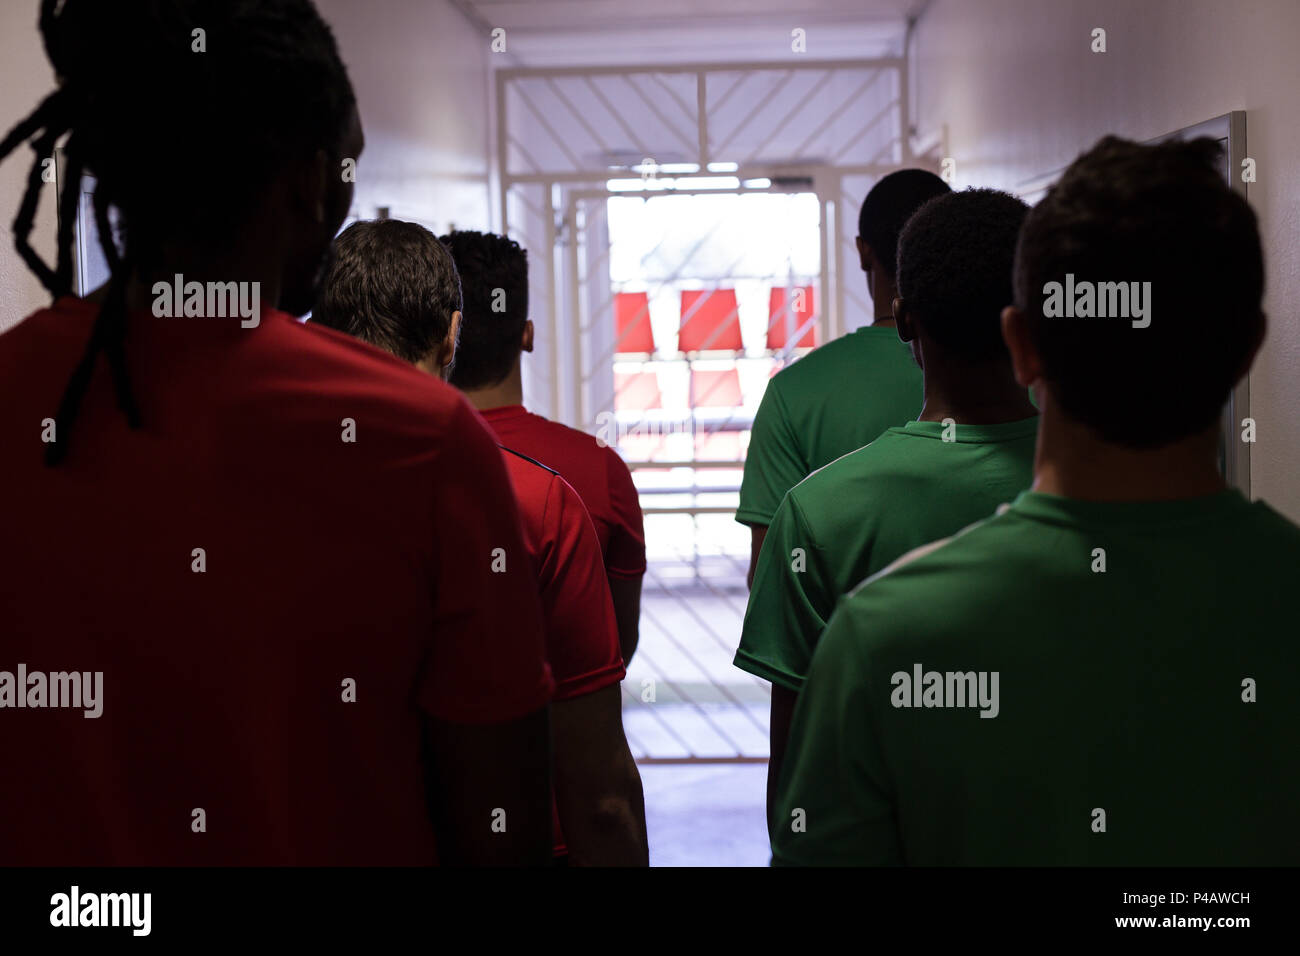 Football players leaving the dressing room - Stock Image